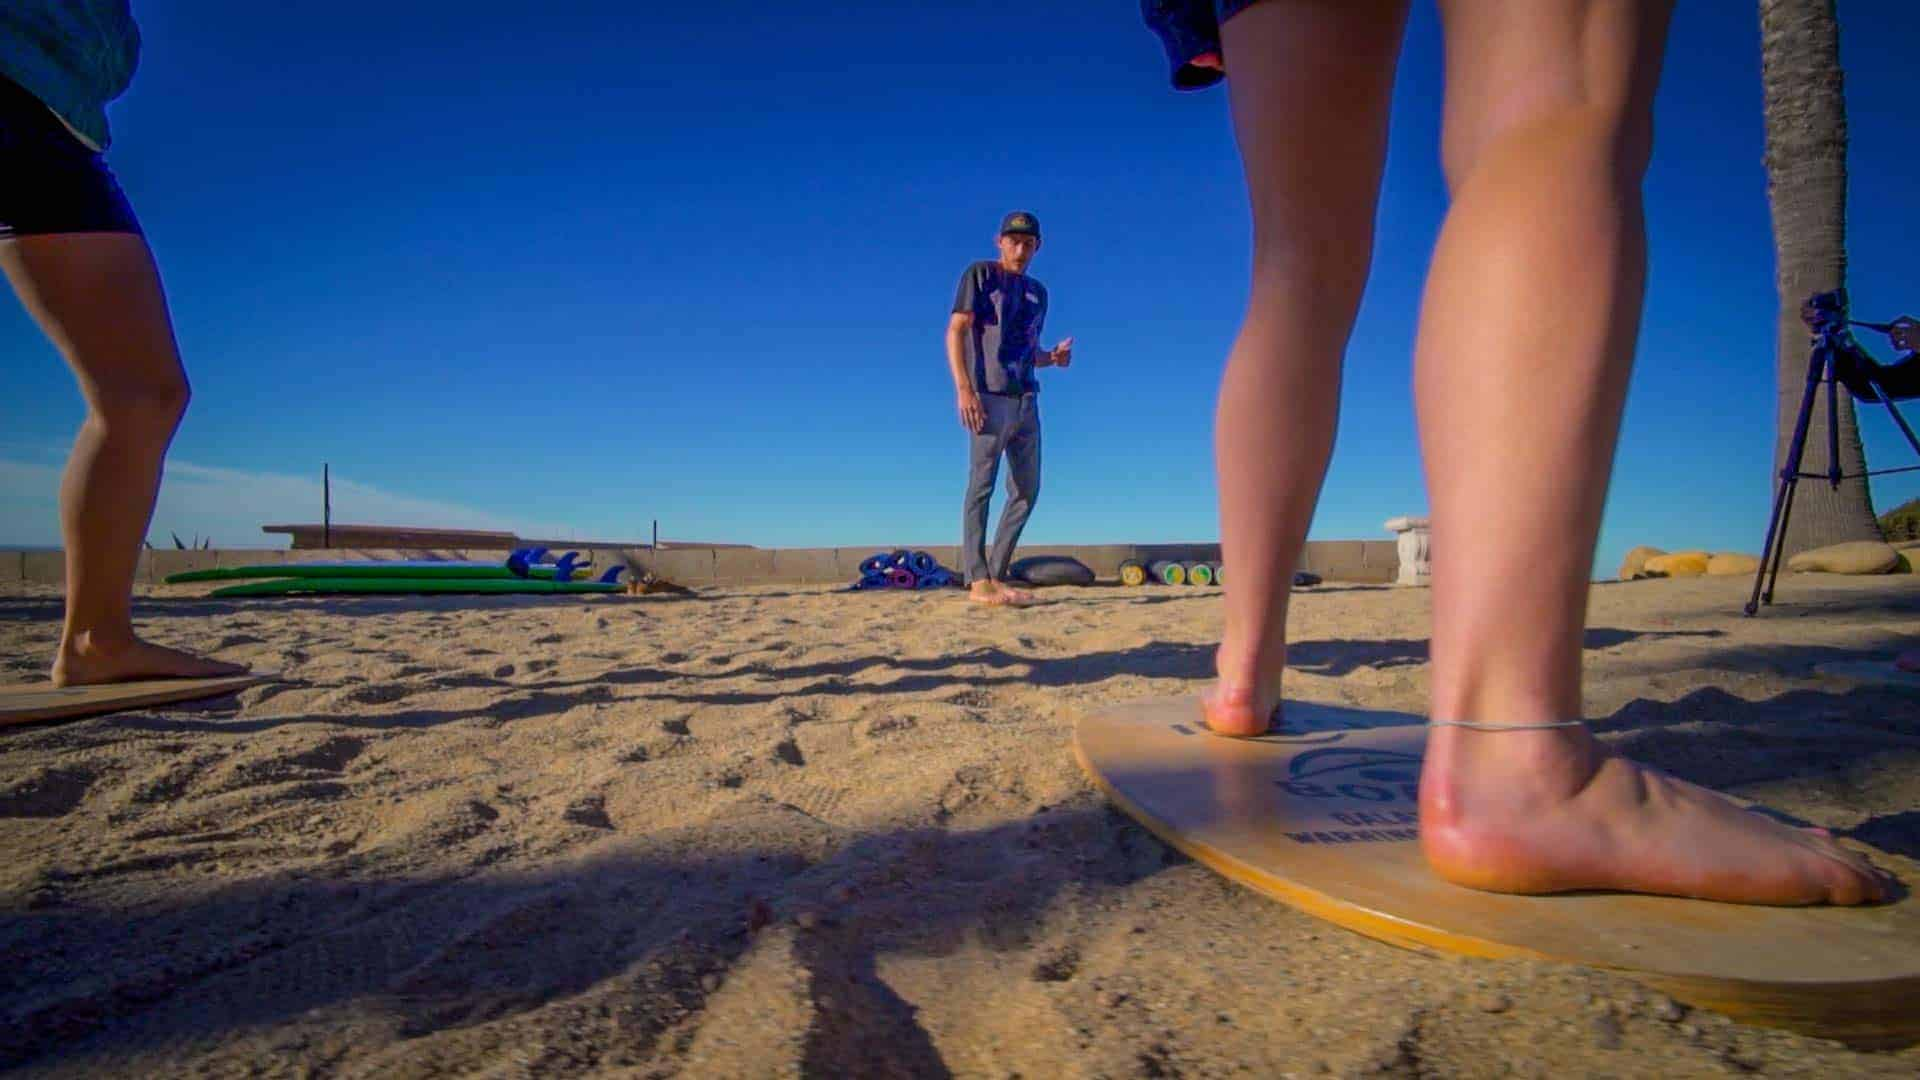 Adventure-in-a-backpack-baja-california-surf-tour-36